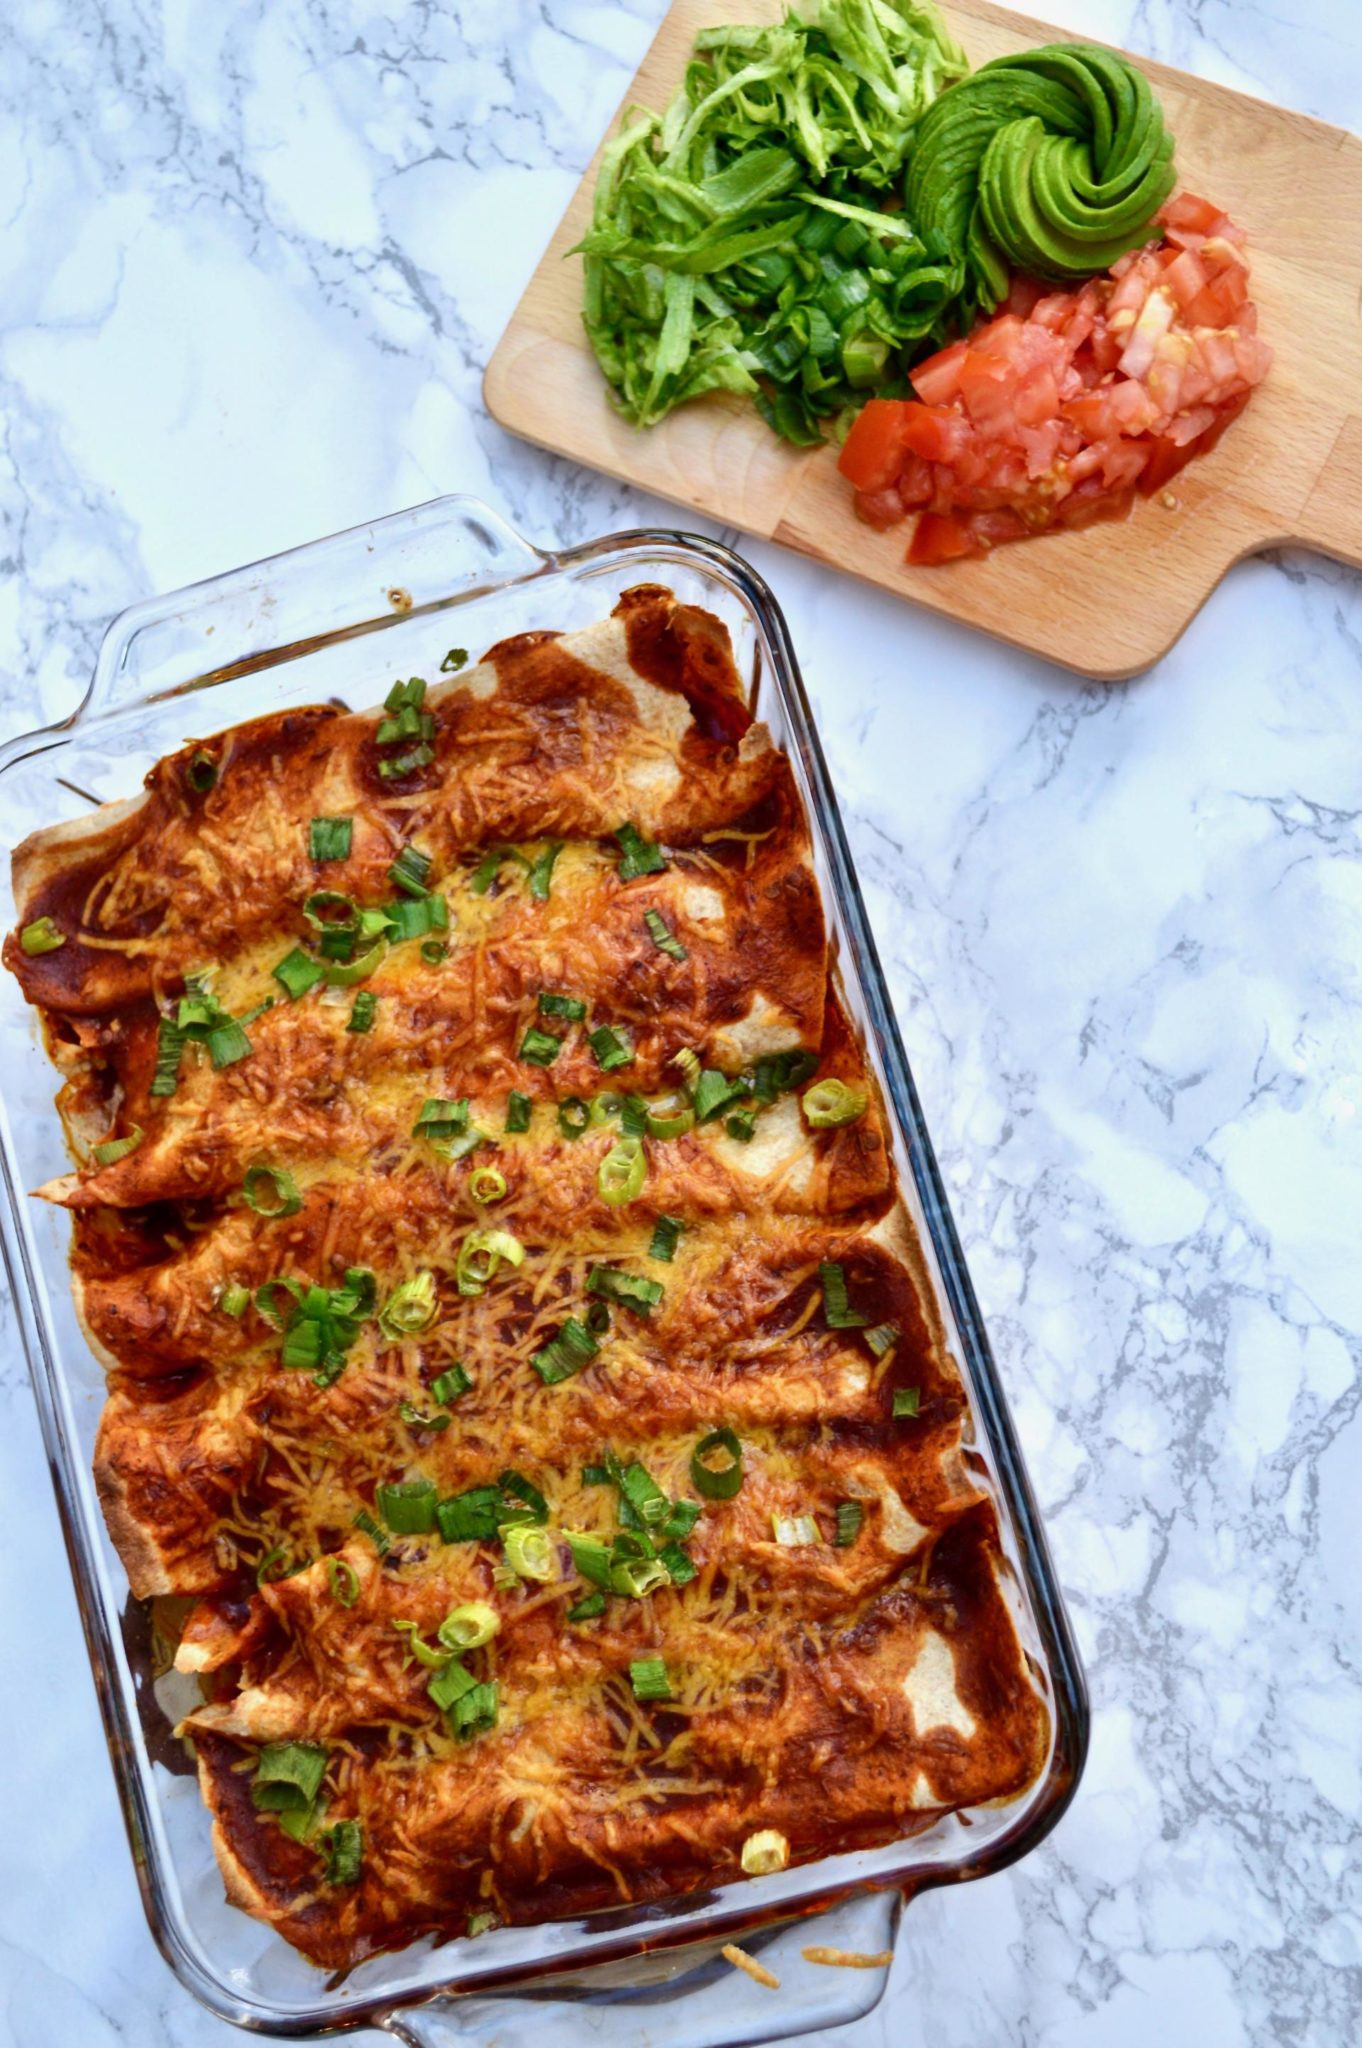 Healthy Turkey Enchiladas  Healthy Turkey Enchiladas An Unblurred Lady